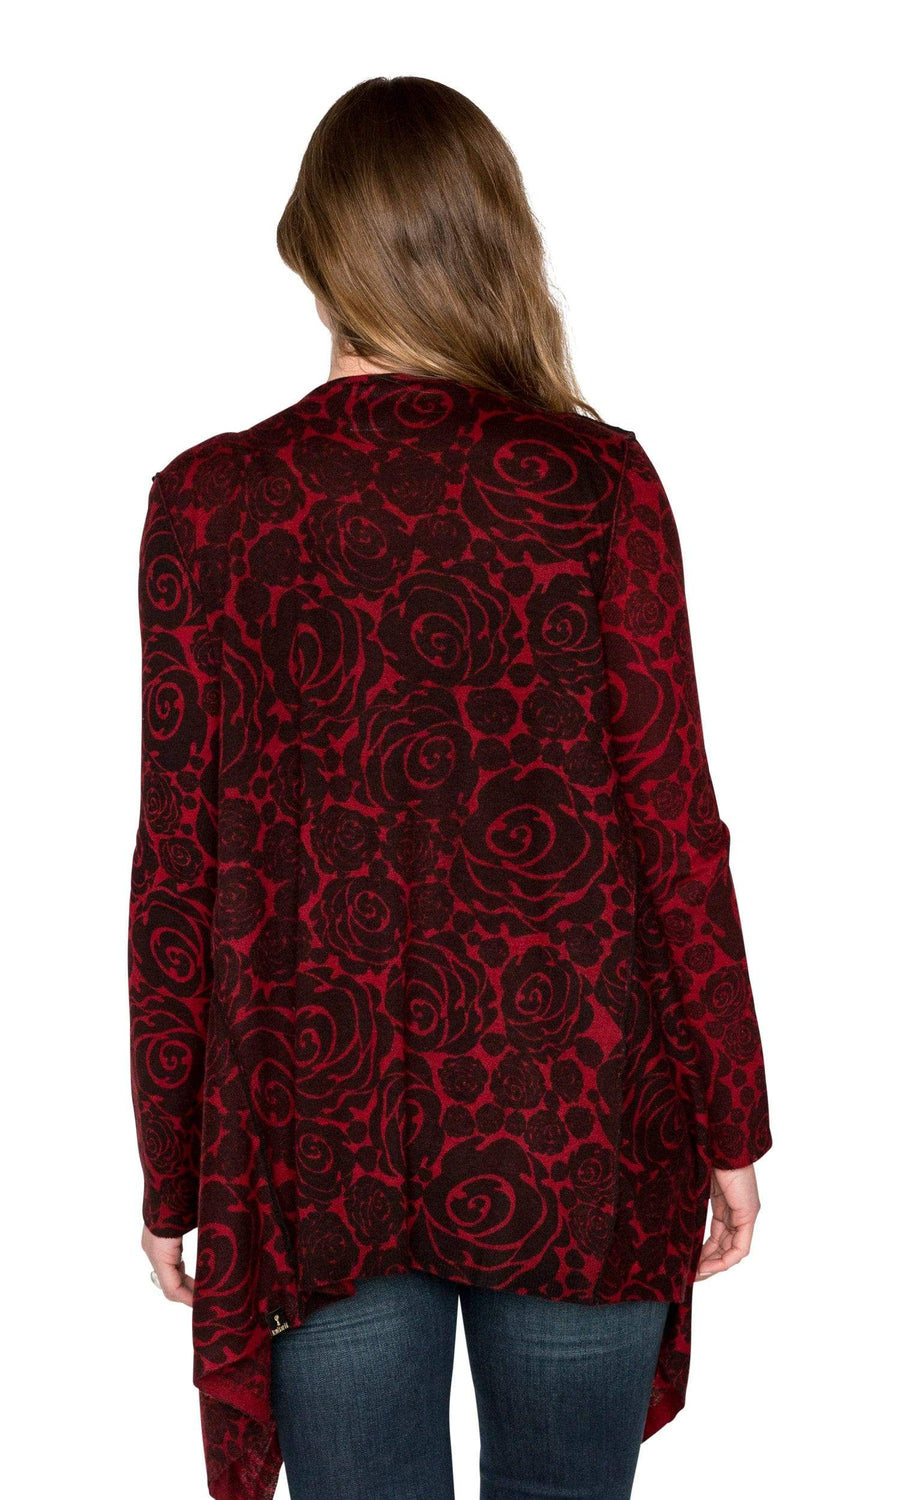 Knitwit Cashmere Open Drape Cardigan - Red Rose